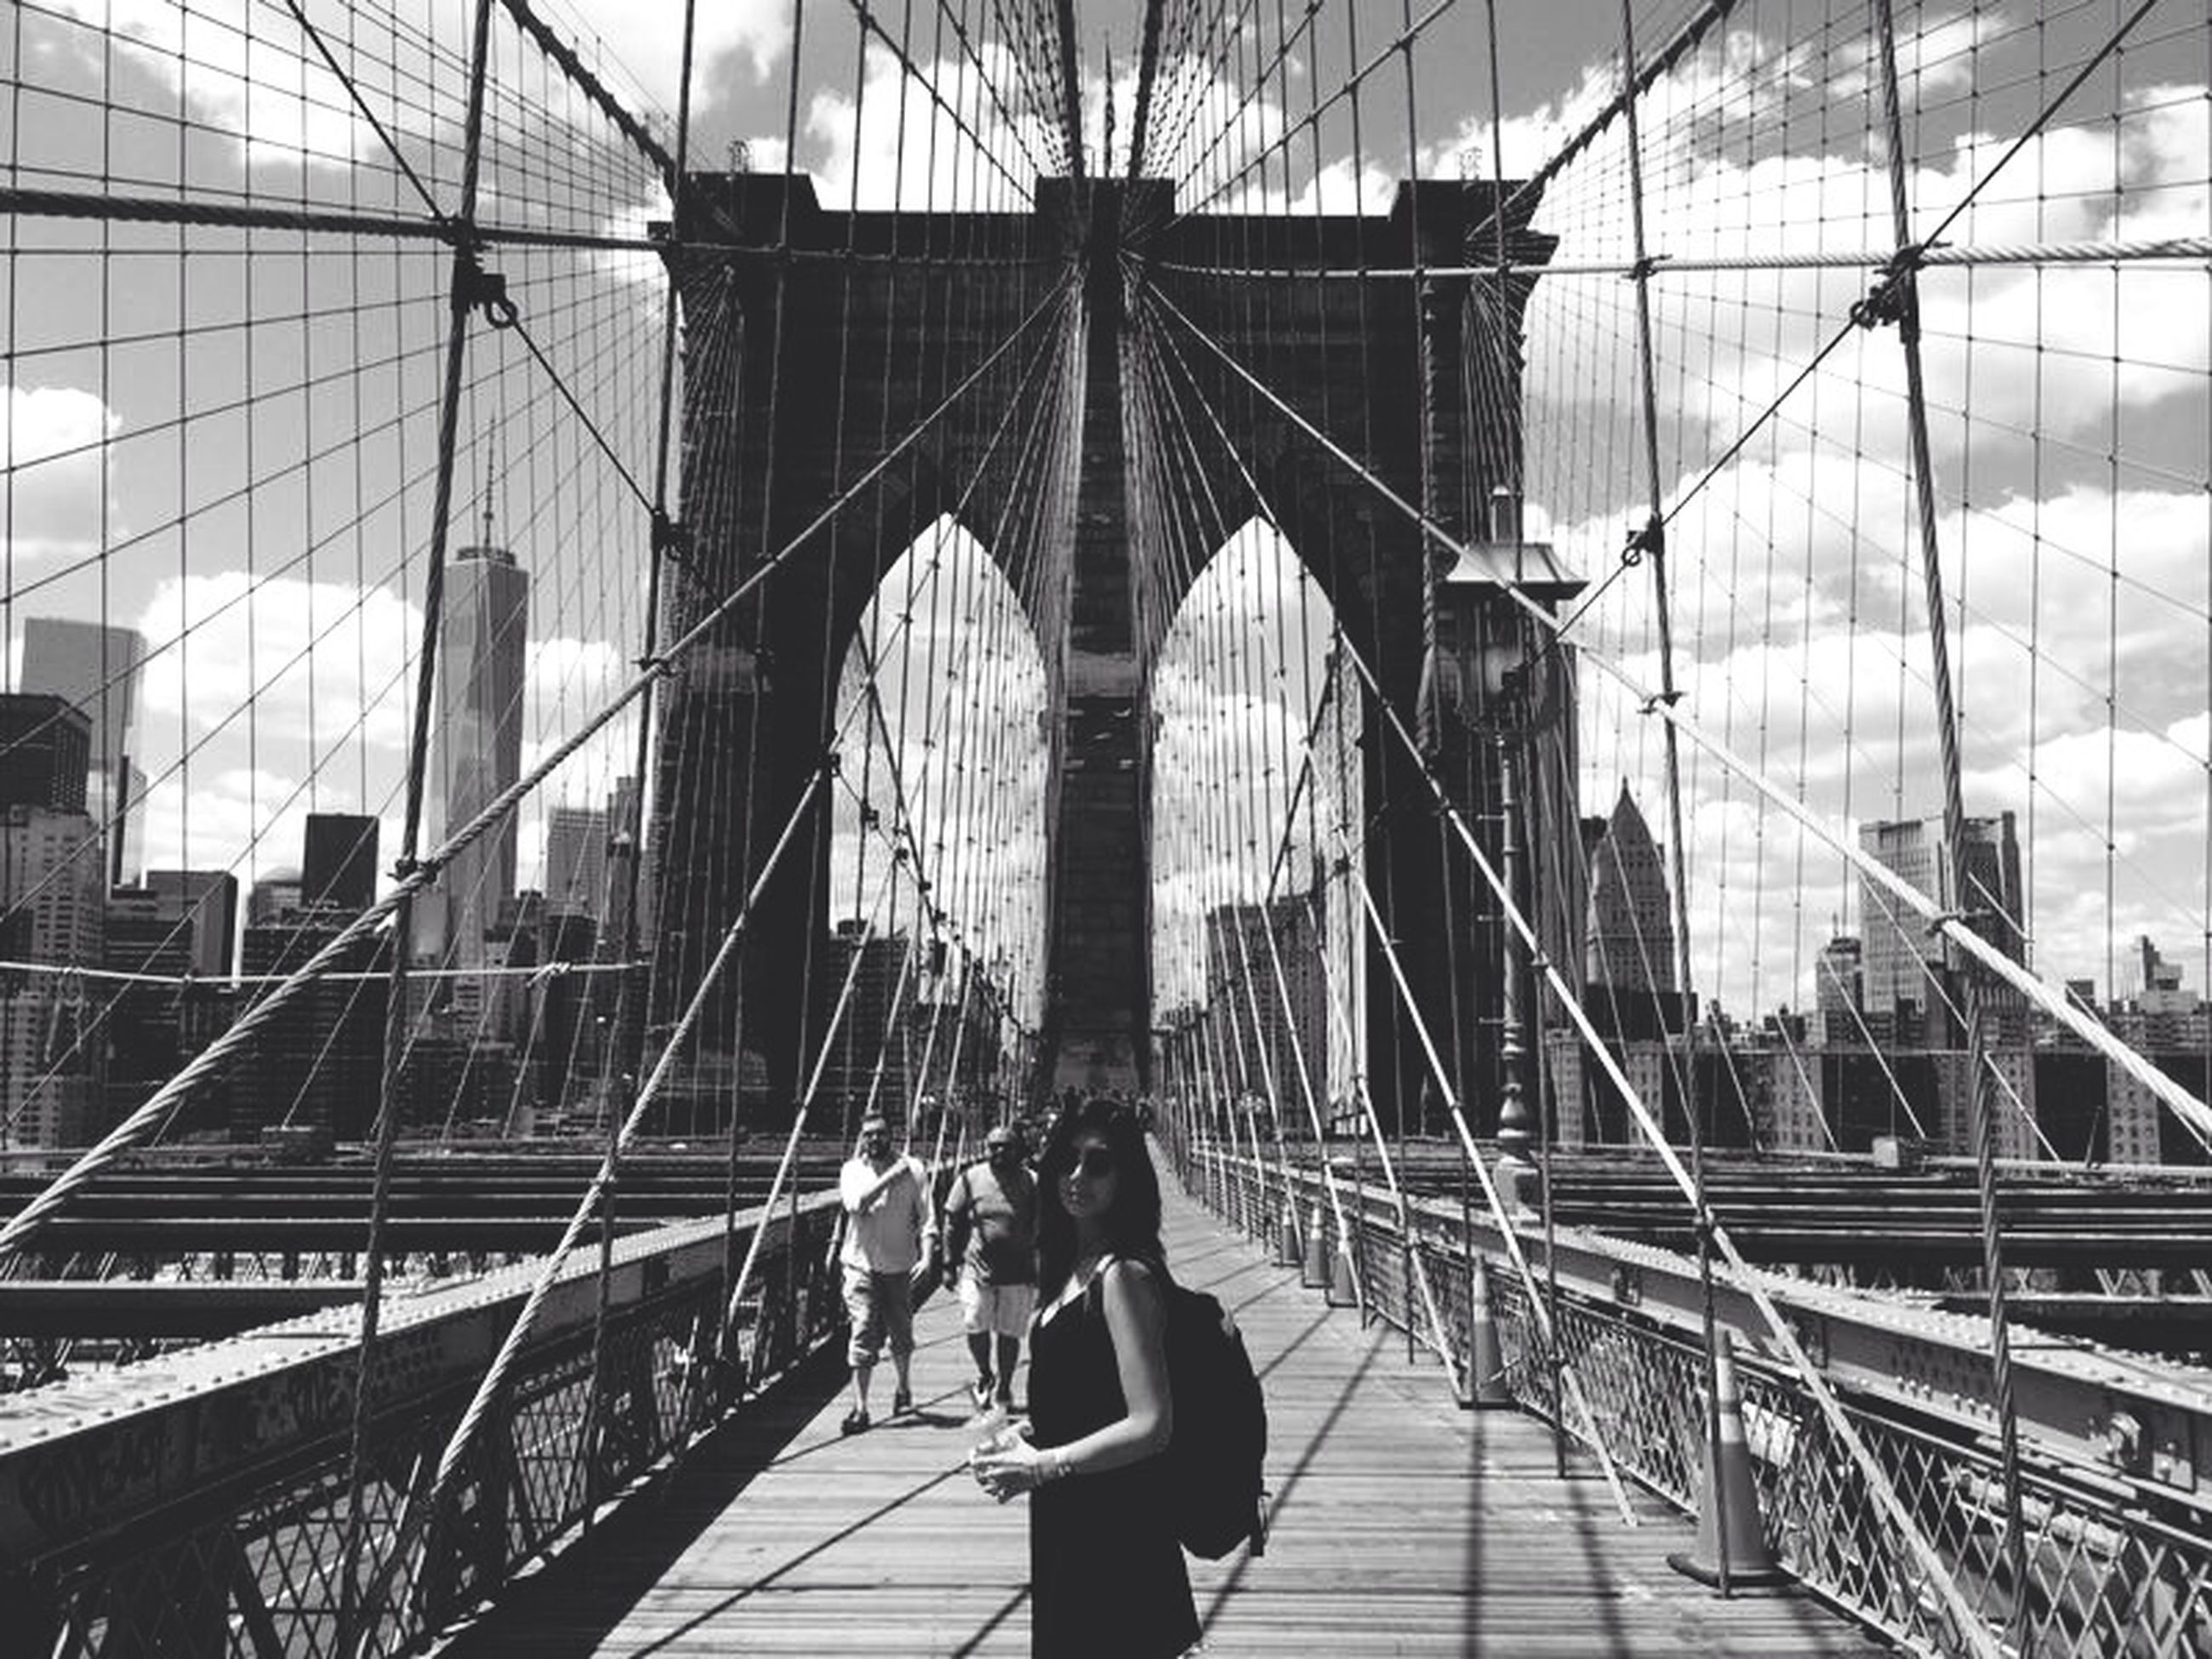 architecture, built structure, bridge - man made structure, lifestyles, connection, men, transportation, person, travel, leisure activity, walking, famous place, suspension bridge, engineering, city, brooklyn bridge, travel destinations, tourism, city life